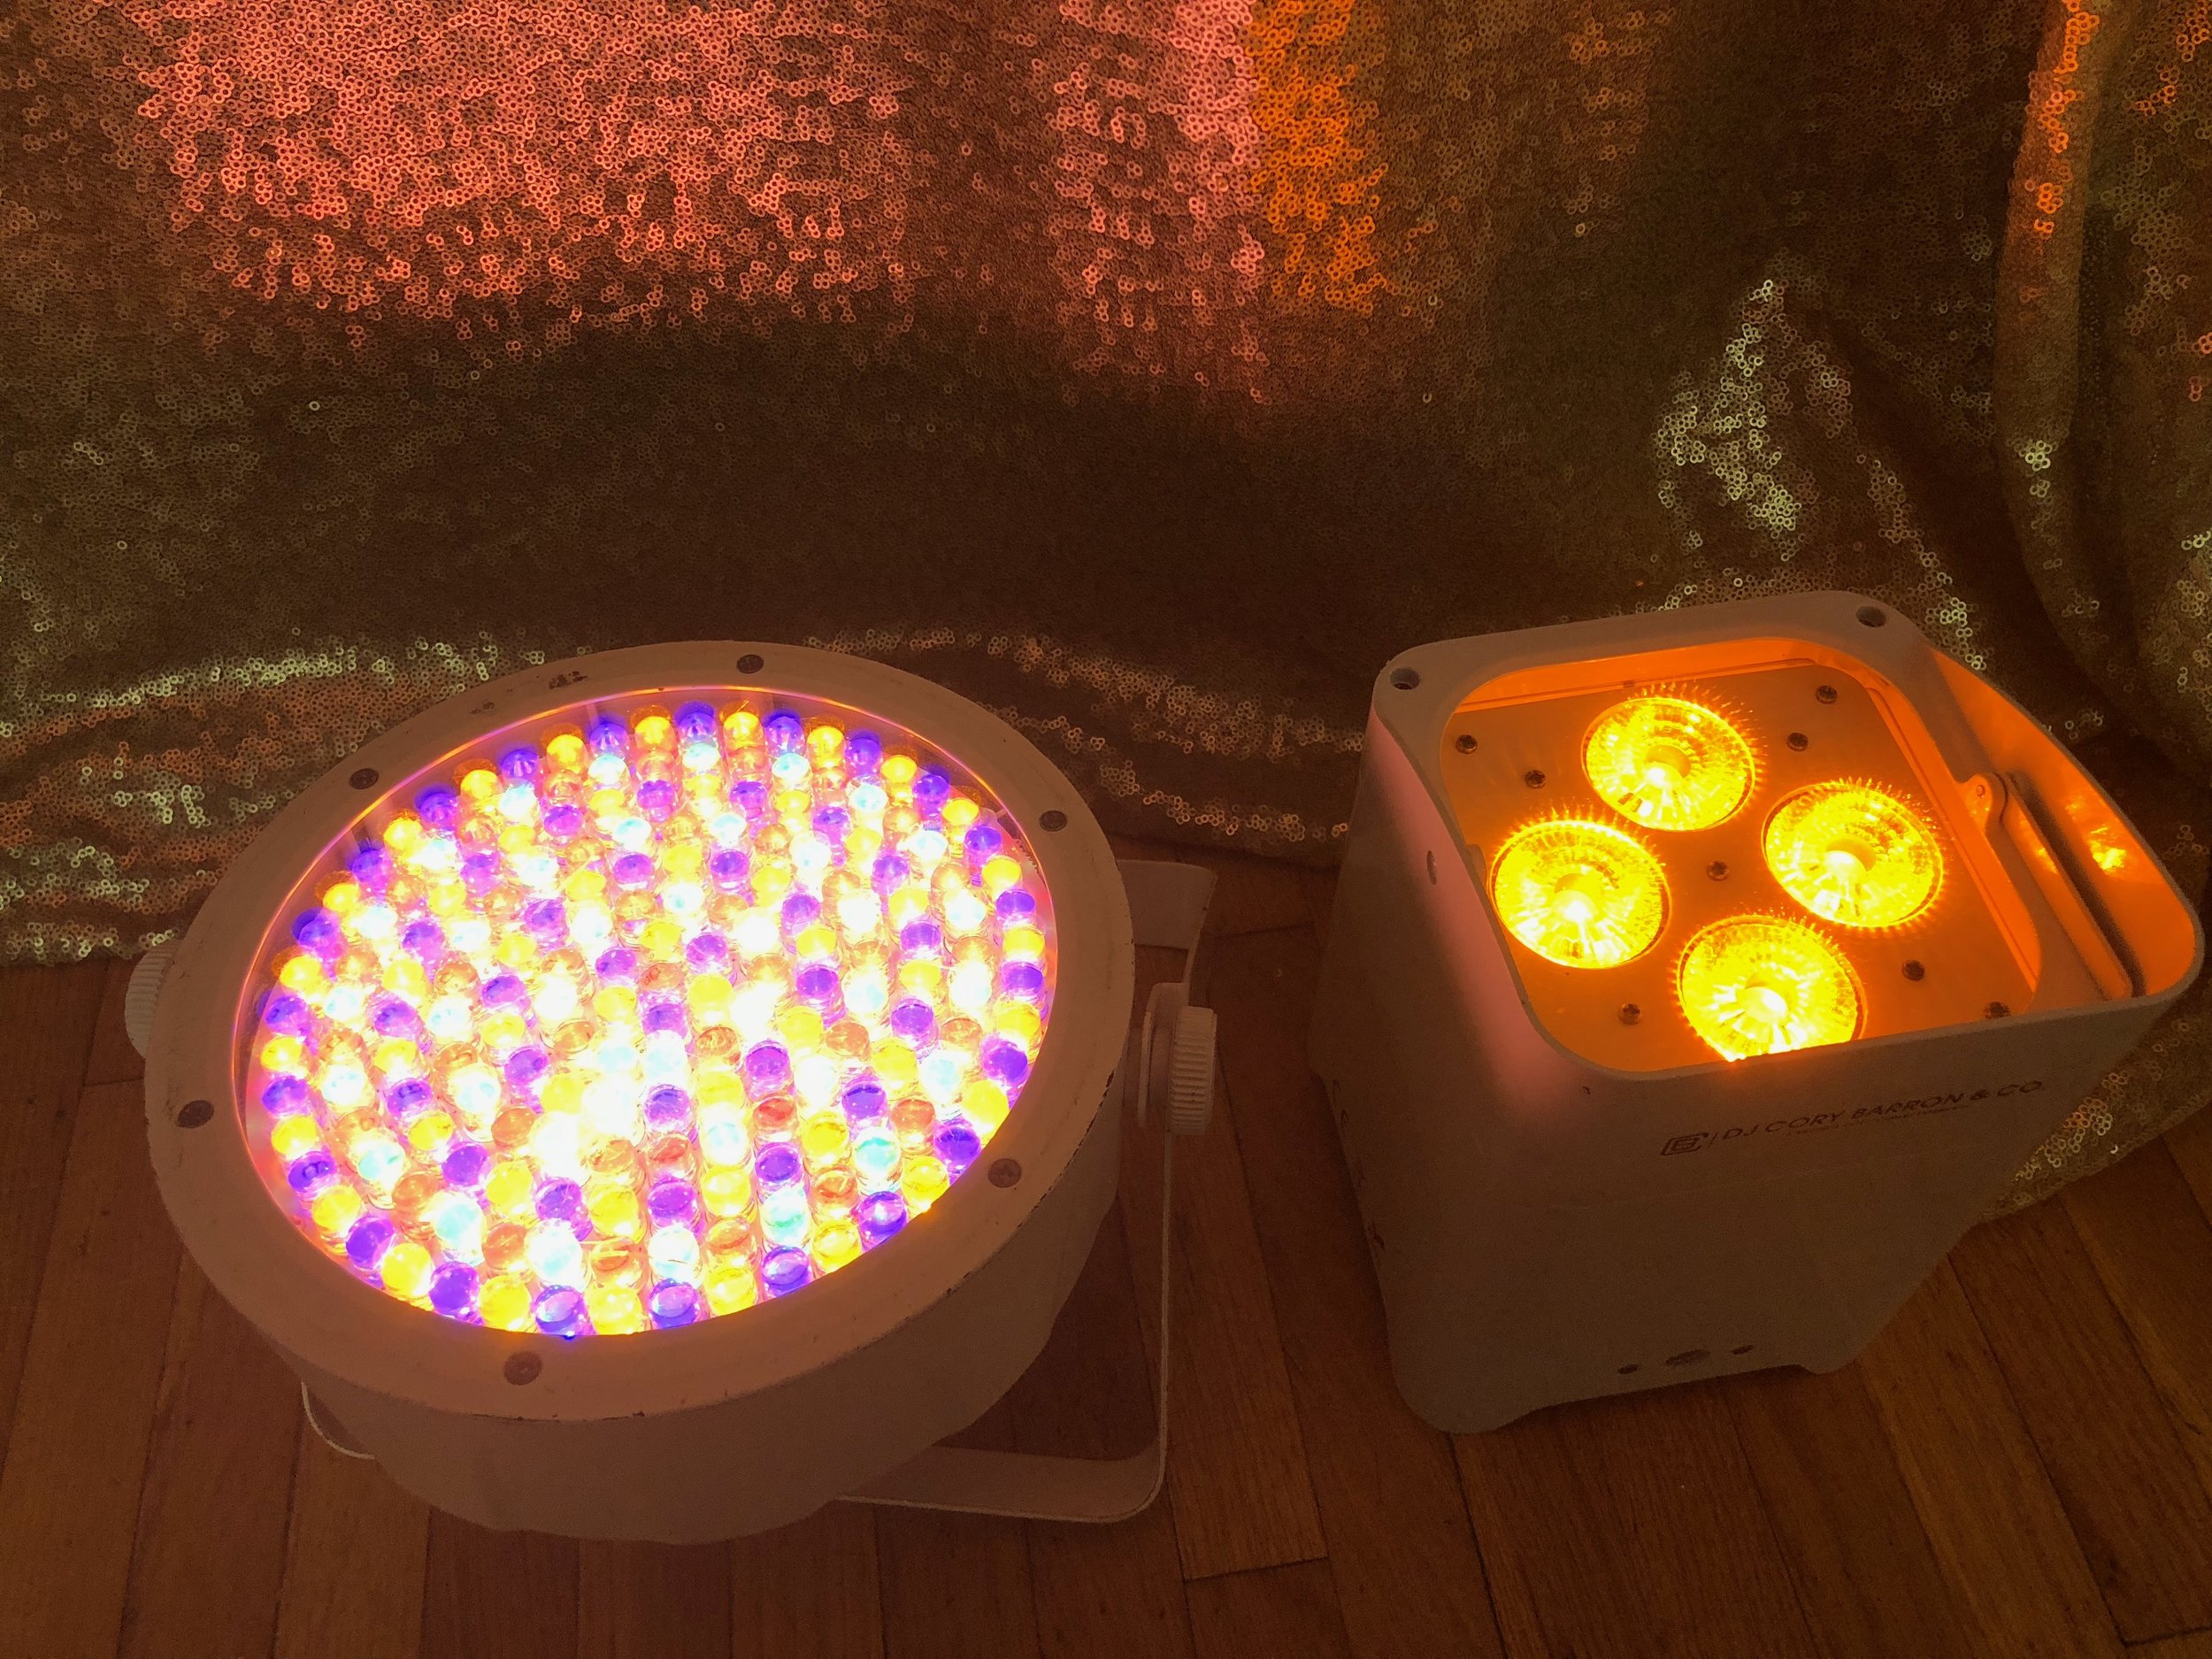 True Amber (Warm Candle light) Color Lighting